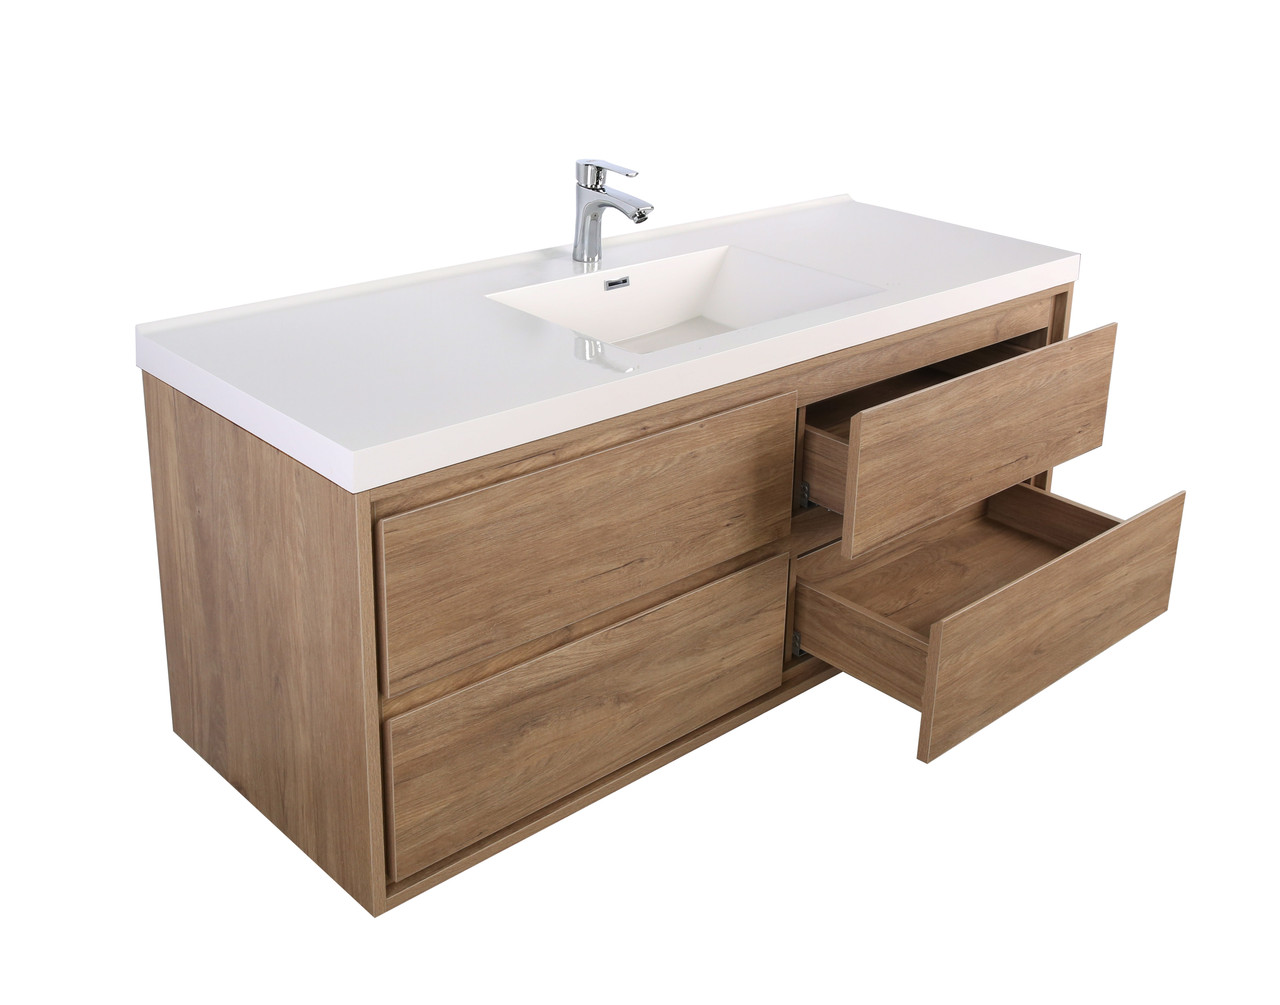 Molly 60 Single Sink Teak Oak Wall Mounted Modern Vanity Bathroom Vanities Wholesale Inc